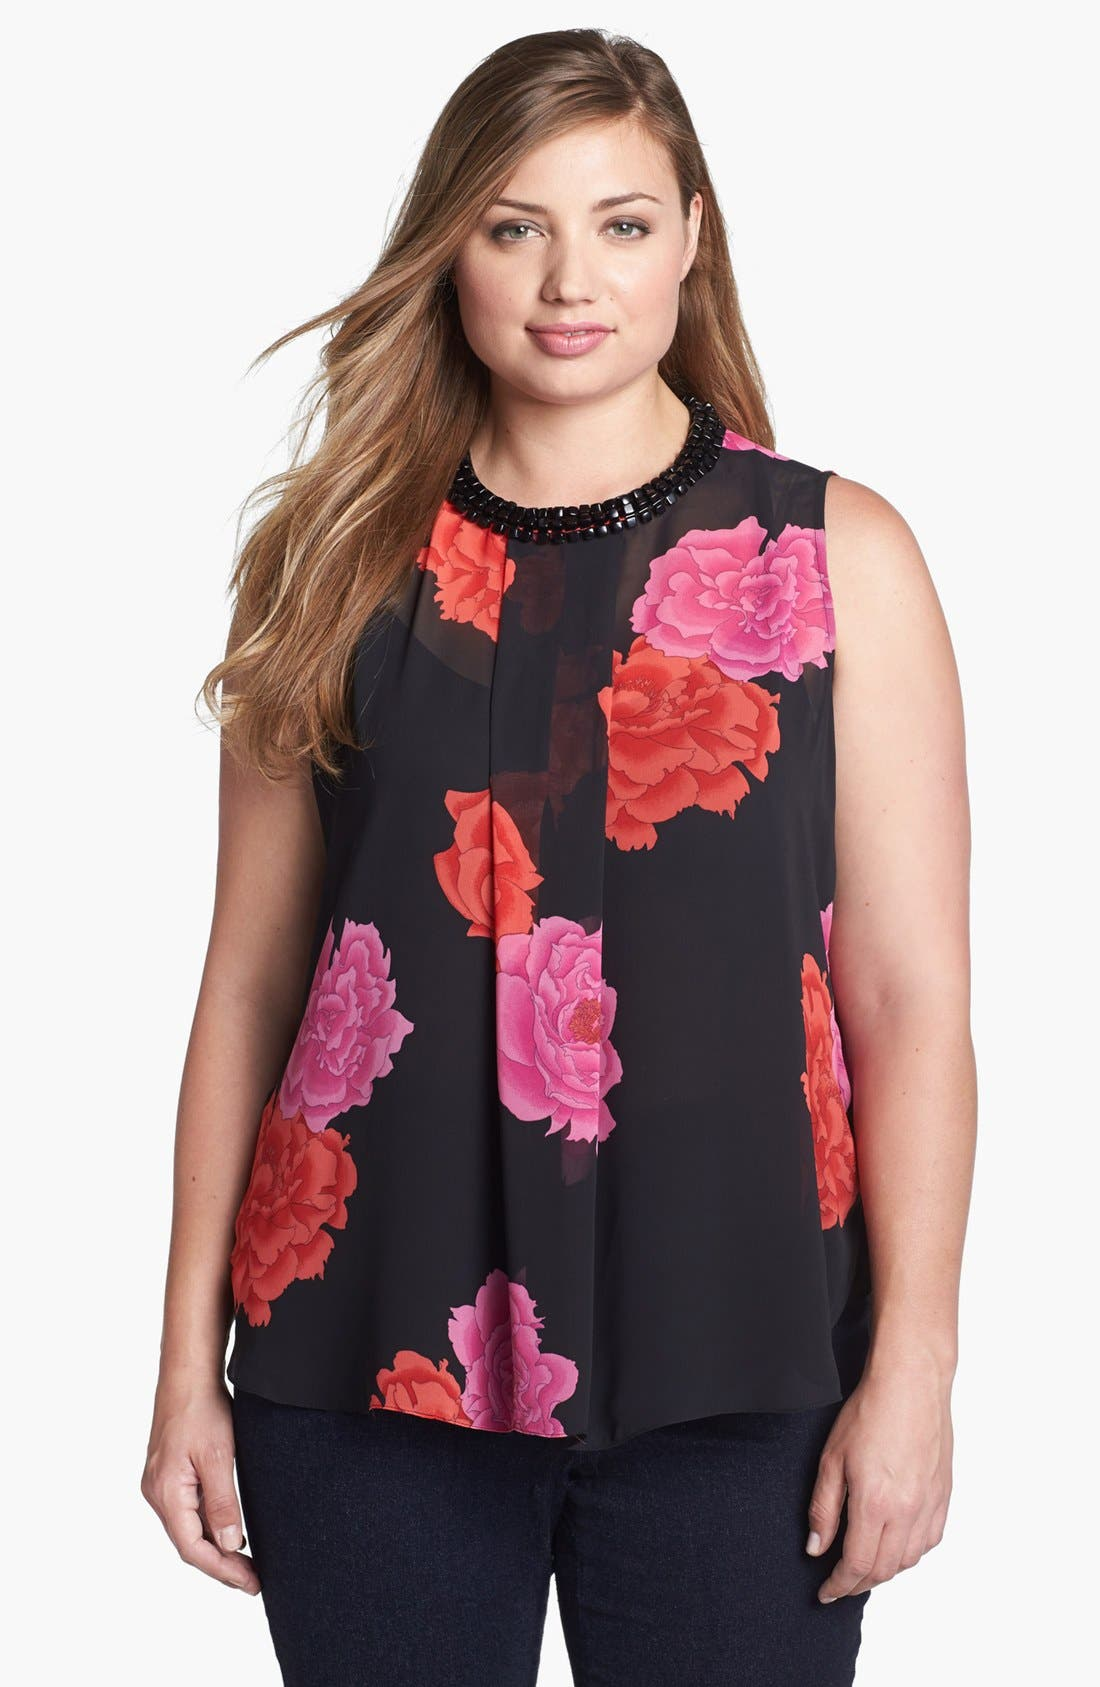 Main Image - Vince Camuto 'Peonies' Embellished Blouse (Plus Size)